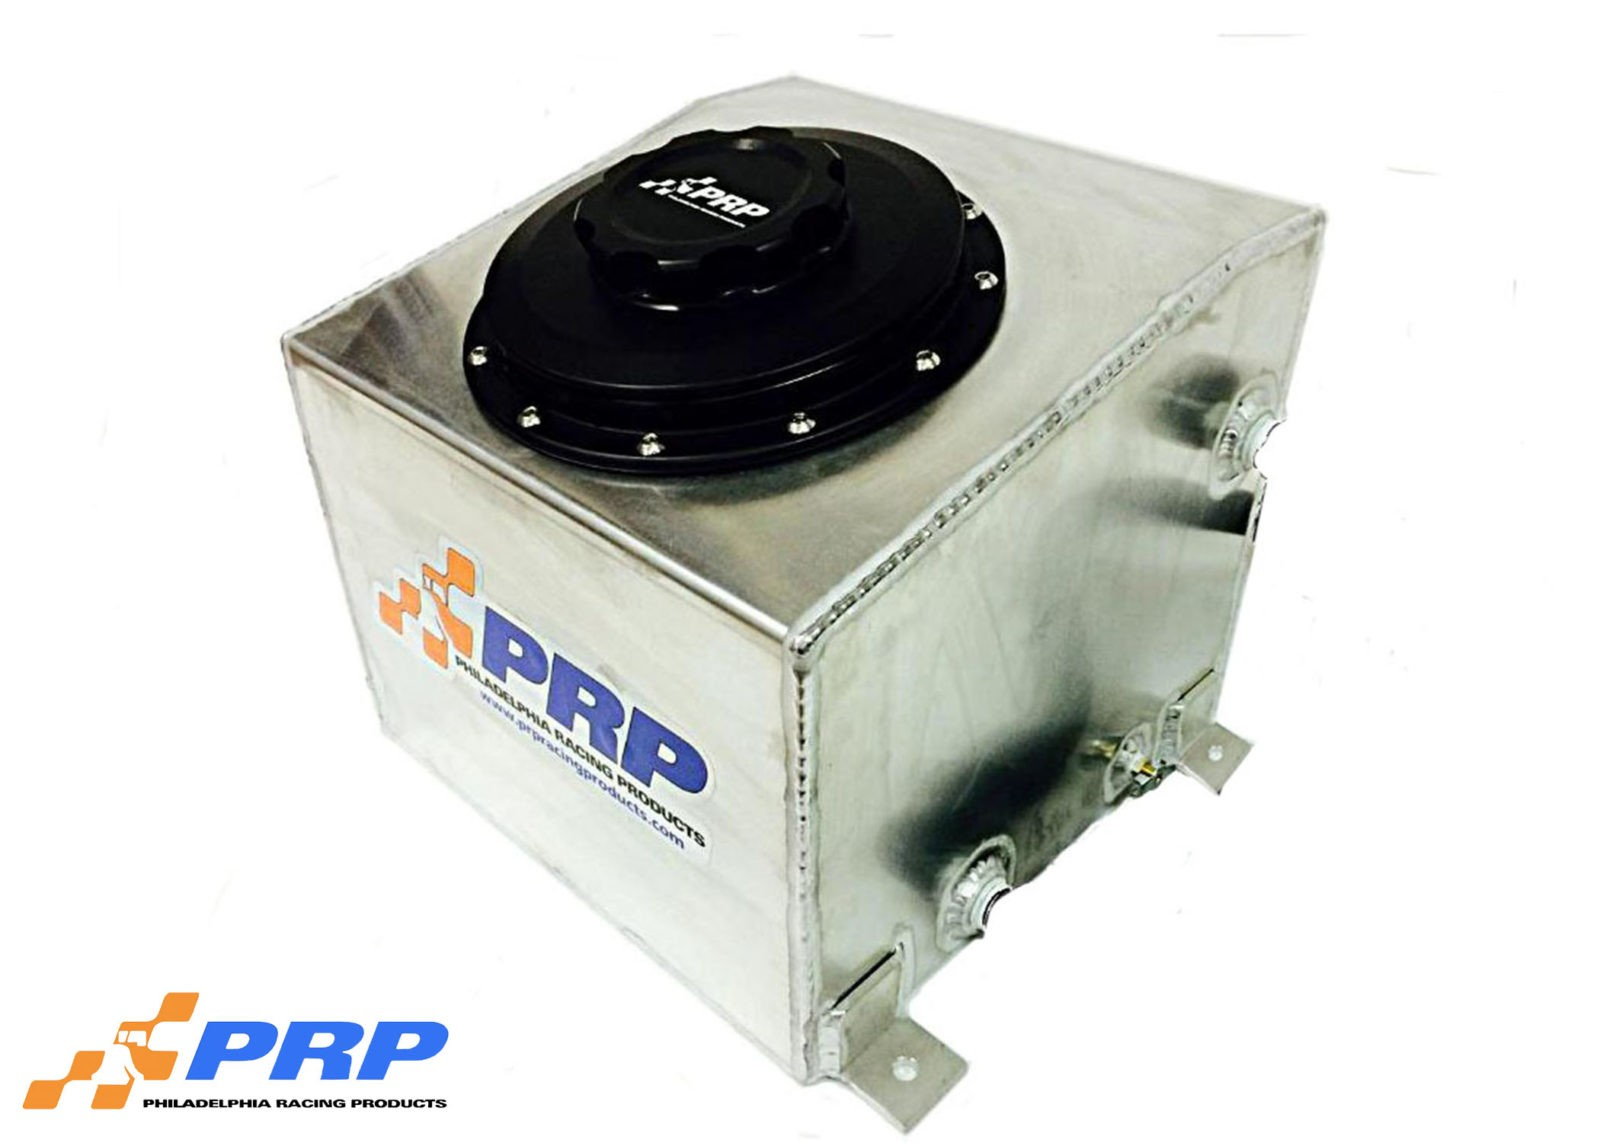 Intercooler tank with Black fill cap made by PRP Racing Products